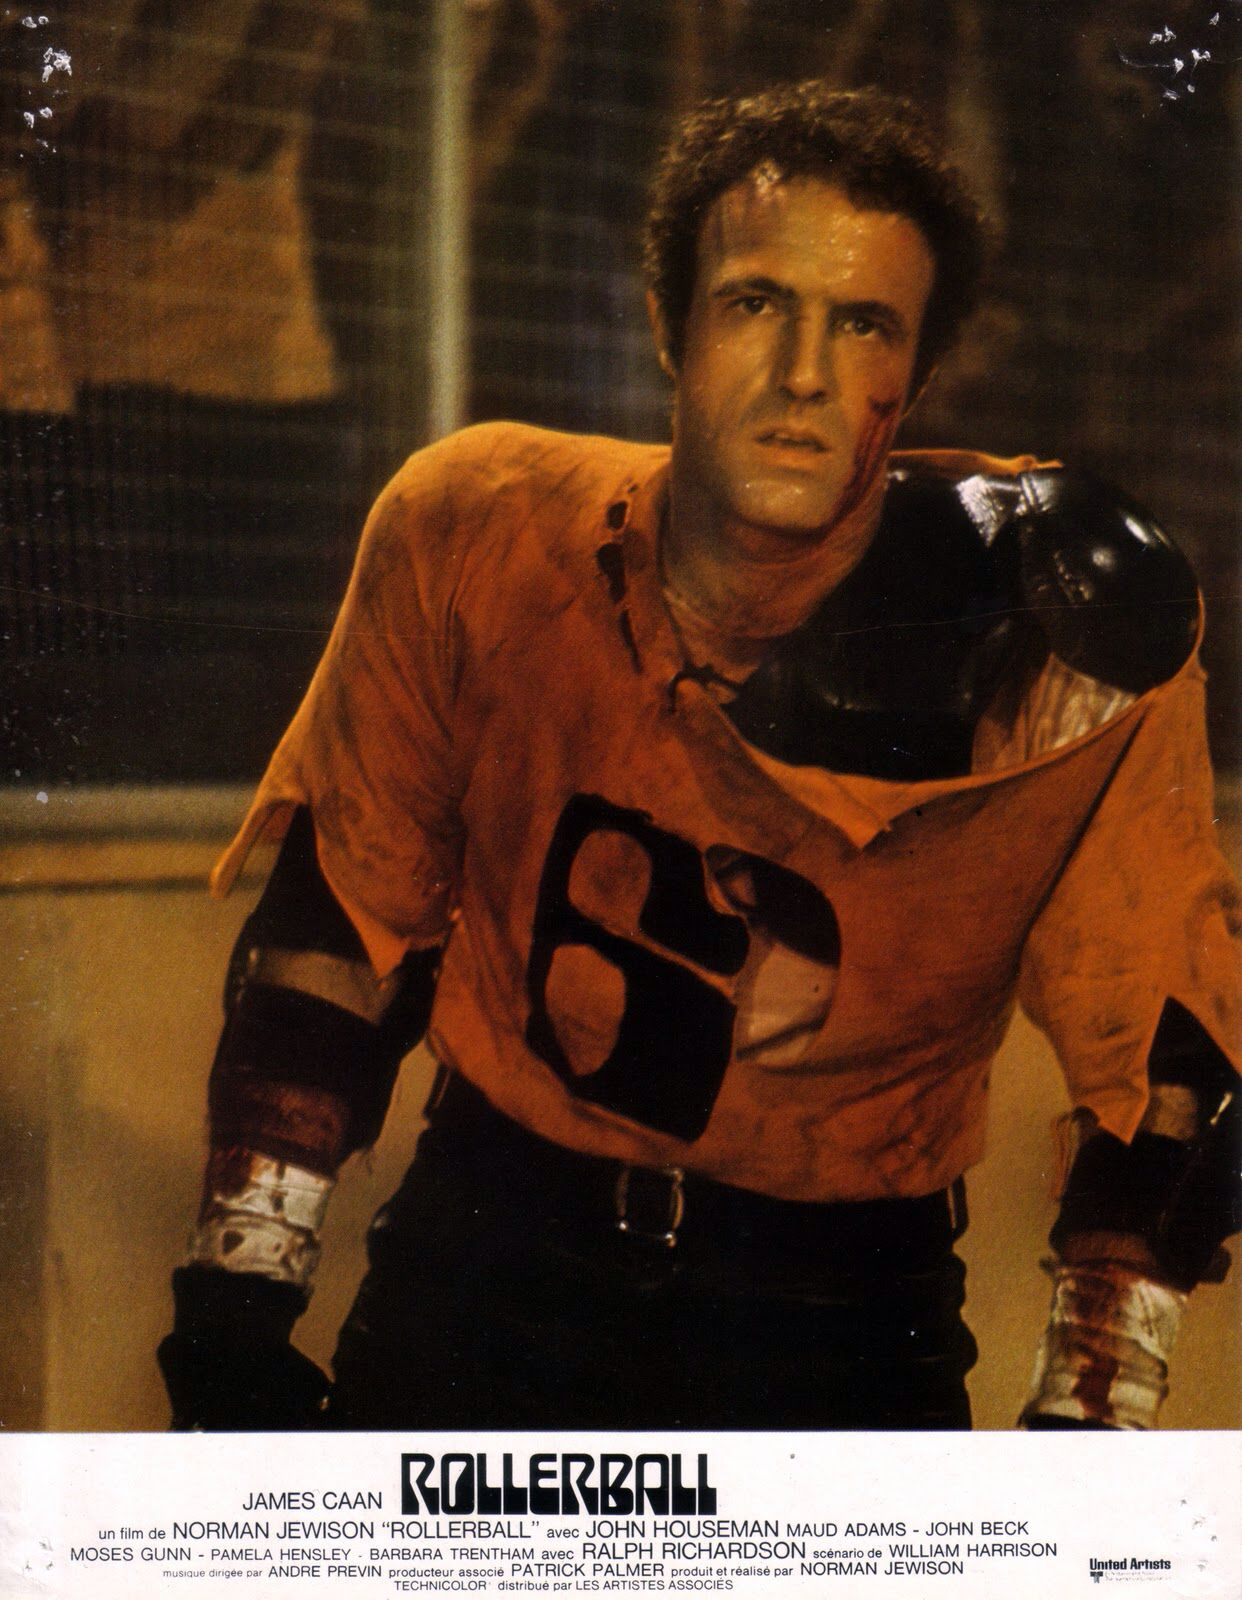 Rollerball Player Science fiction Film T Shirt